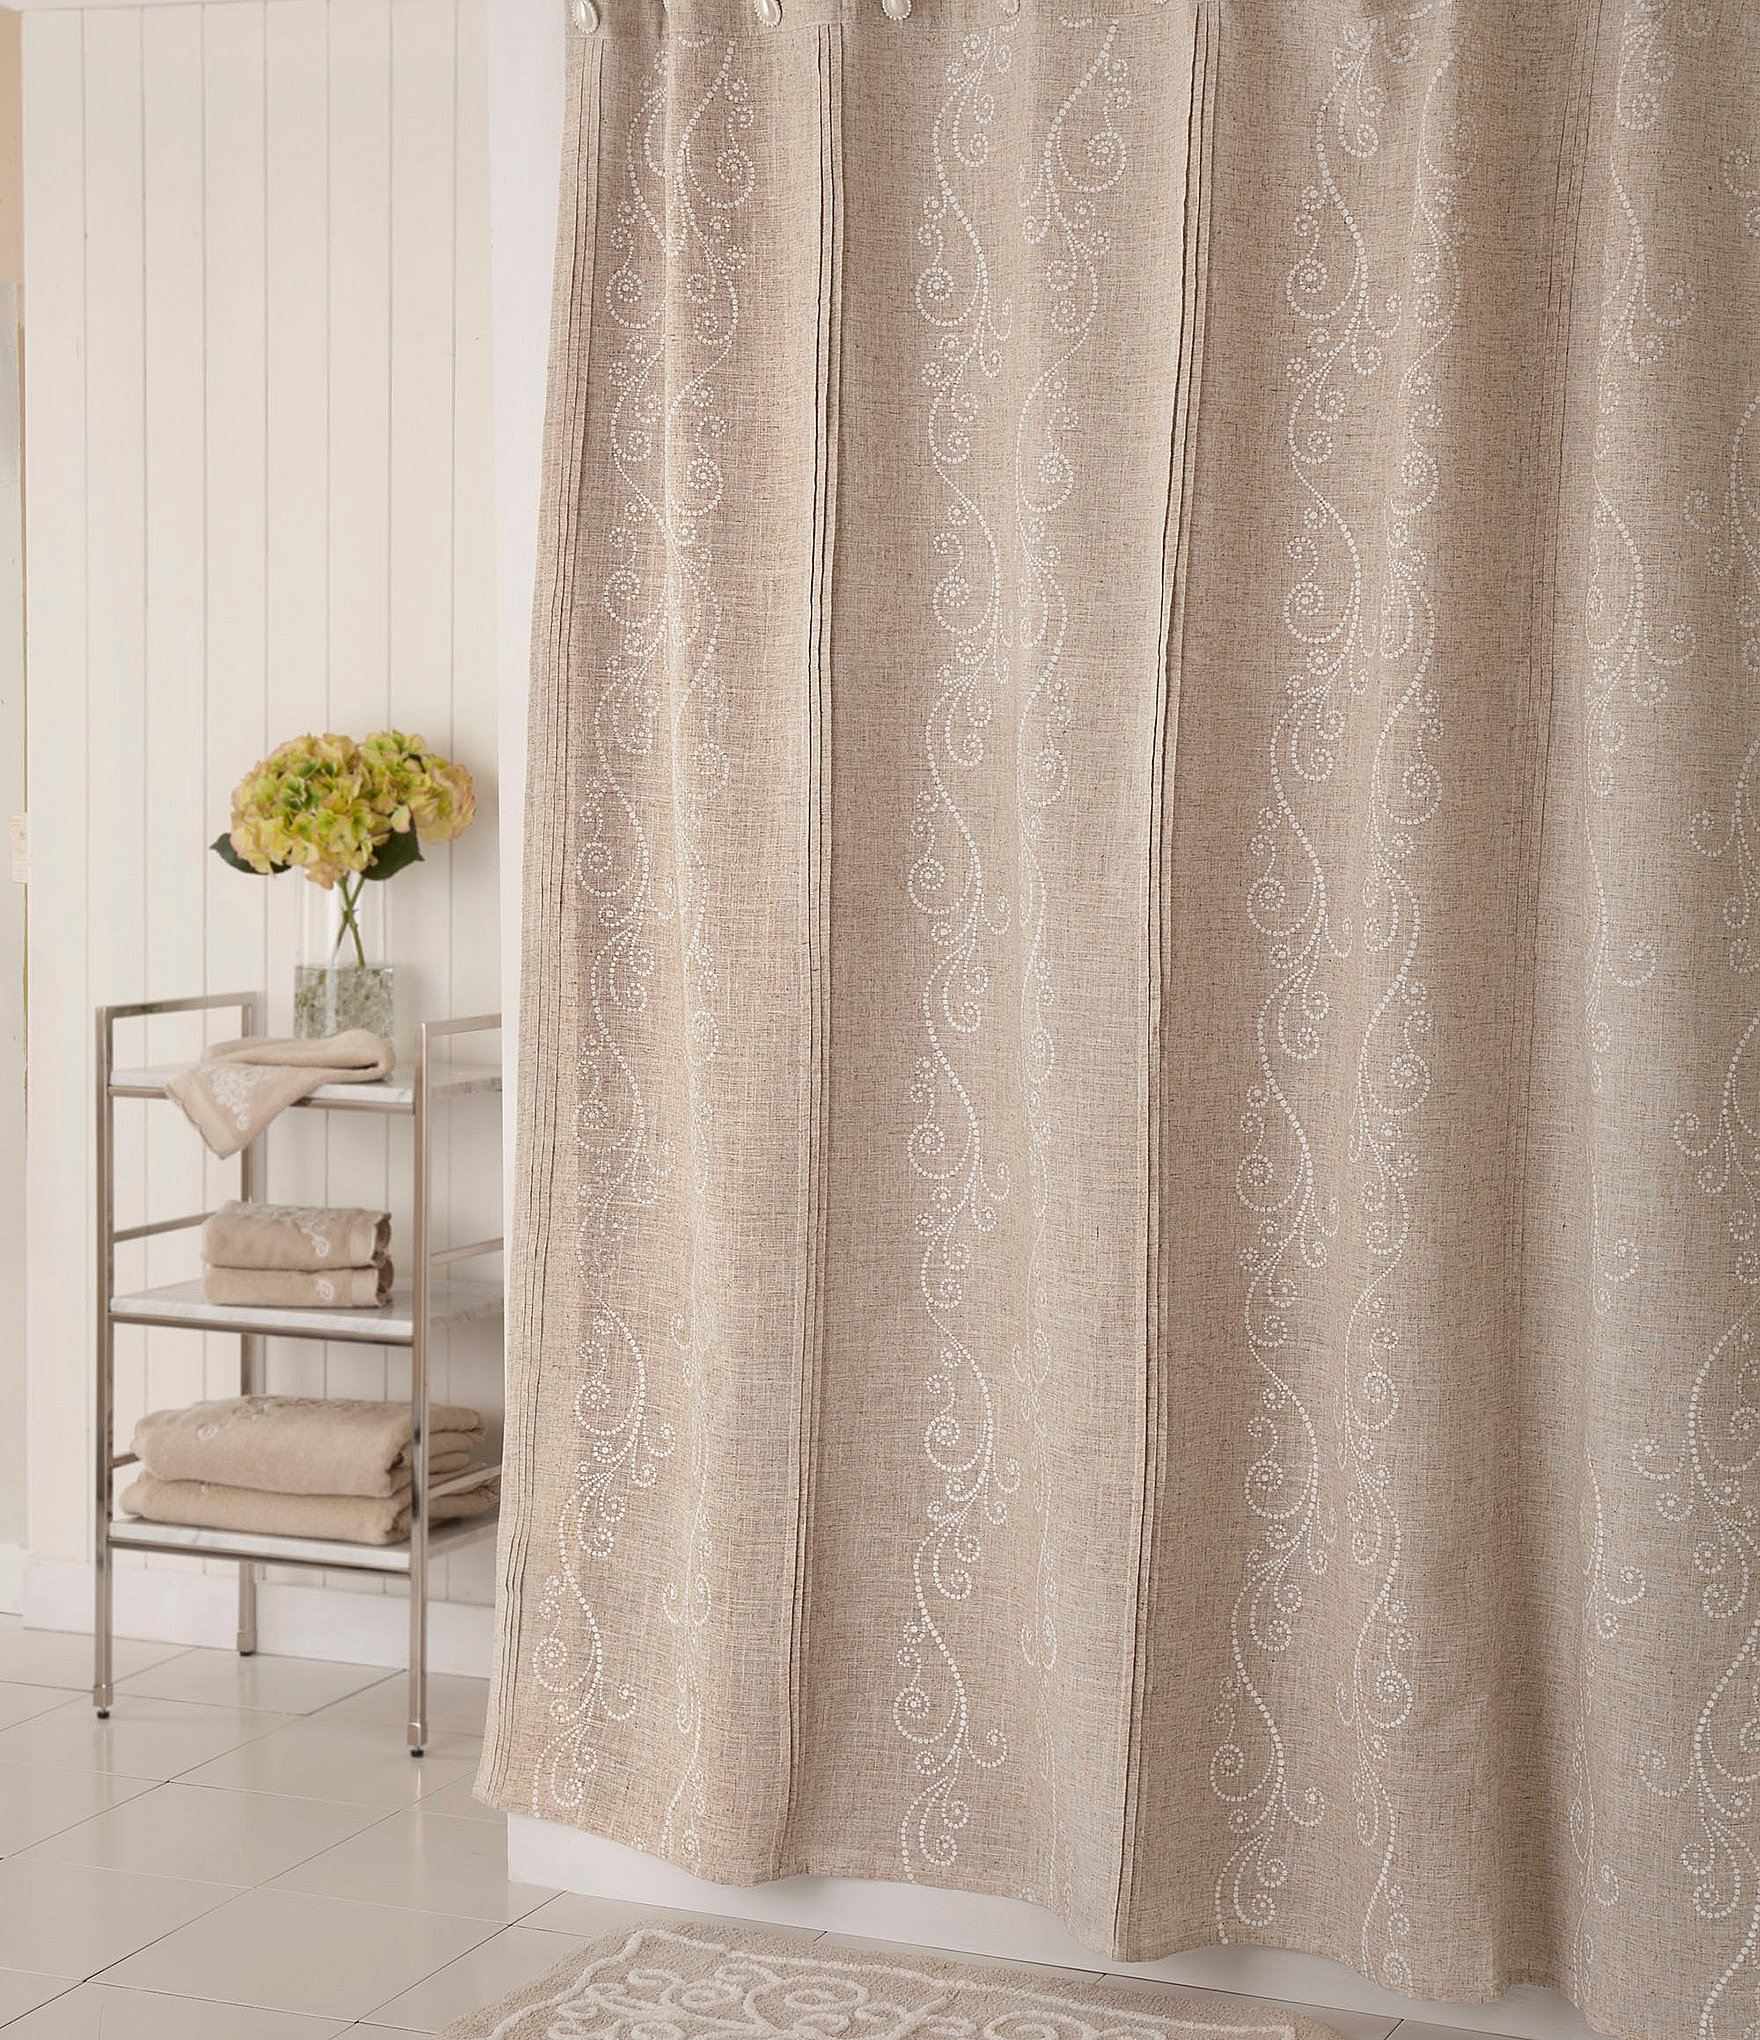 Home Bath Personal Care Shower Curtains Rings Dillards throughout proportions 1760 X 2040